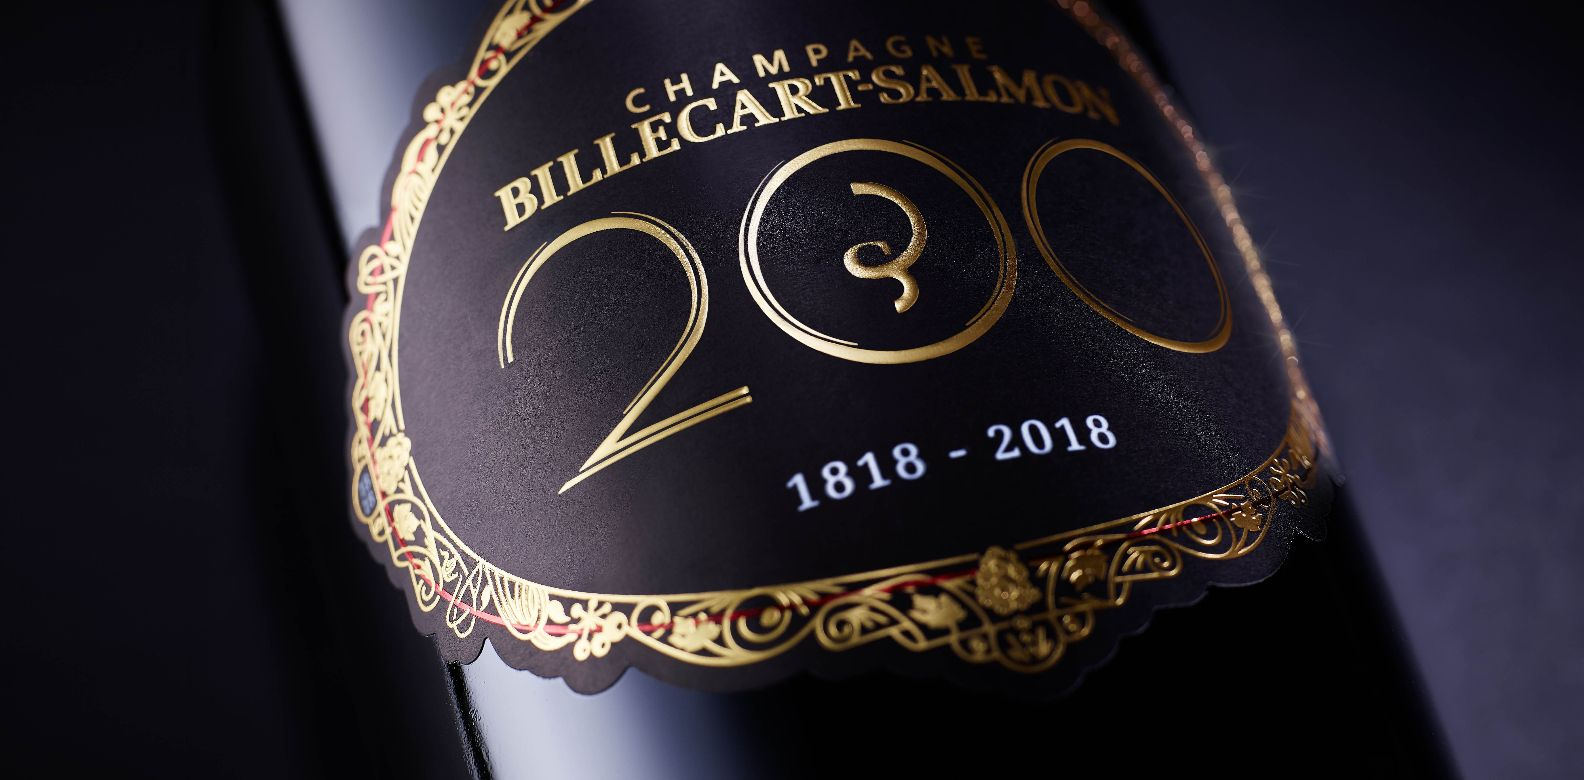 Billecart-Salmon celebrate their bicentenary in 2018